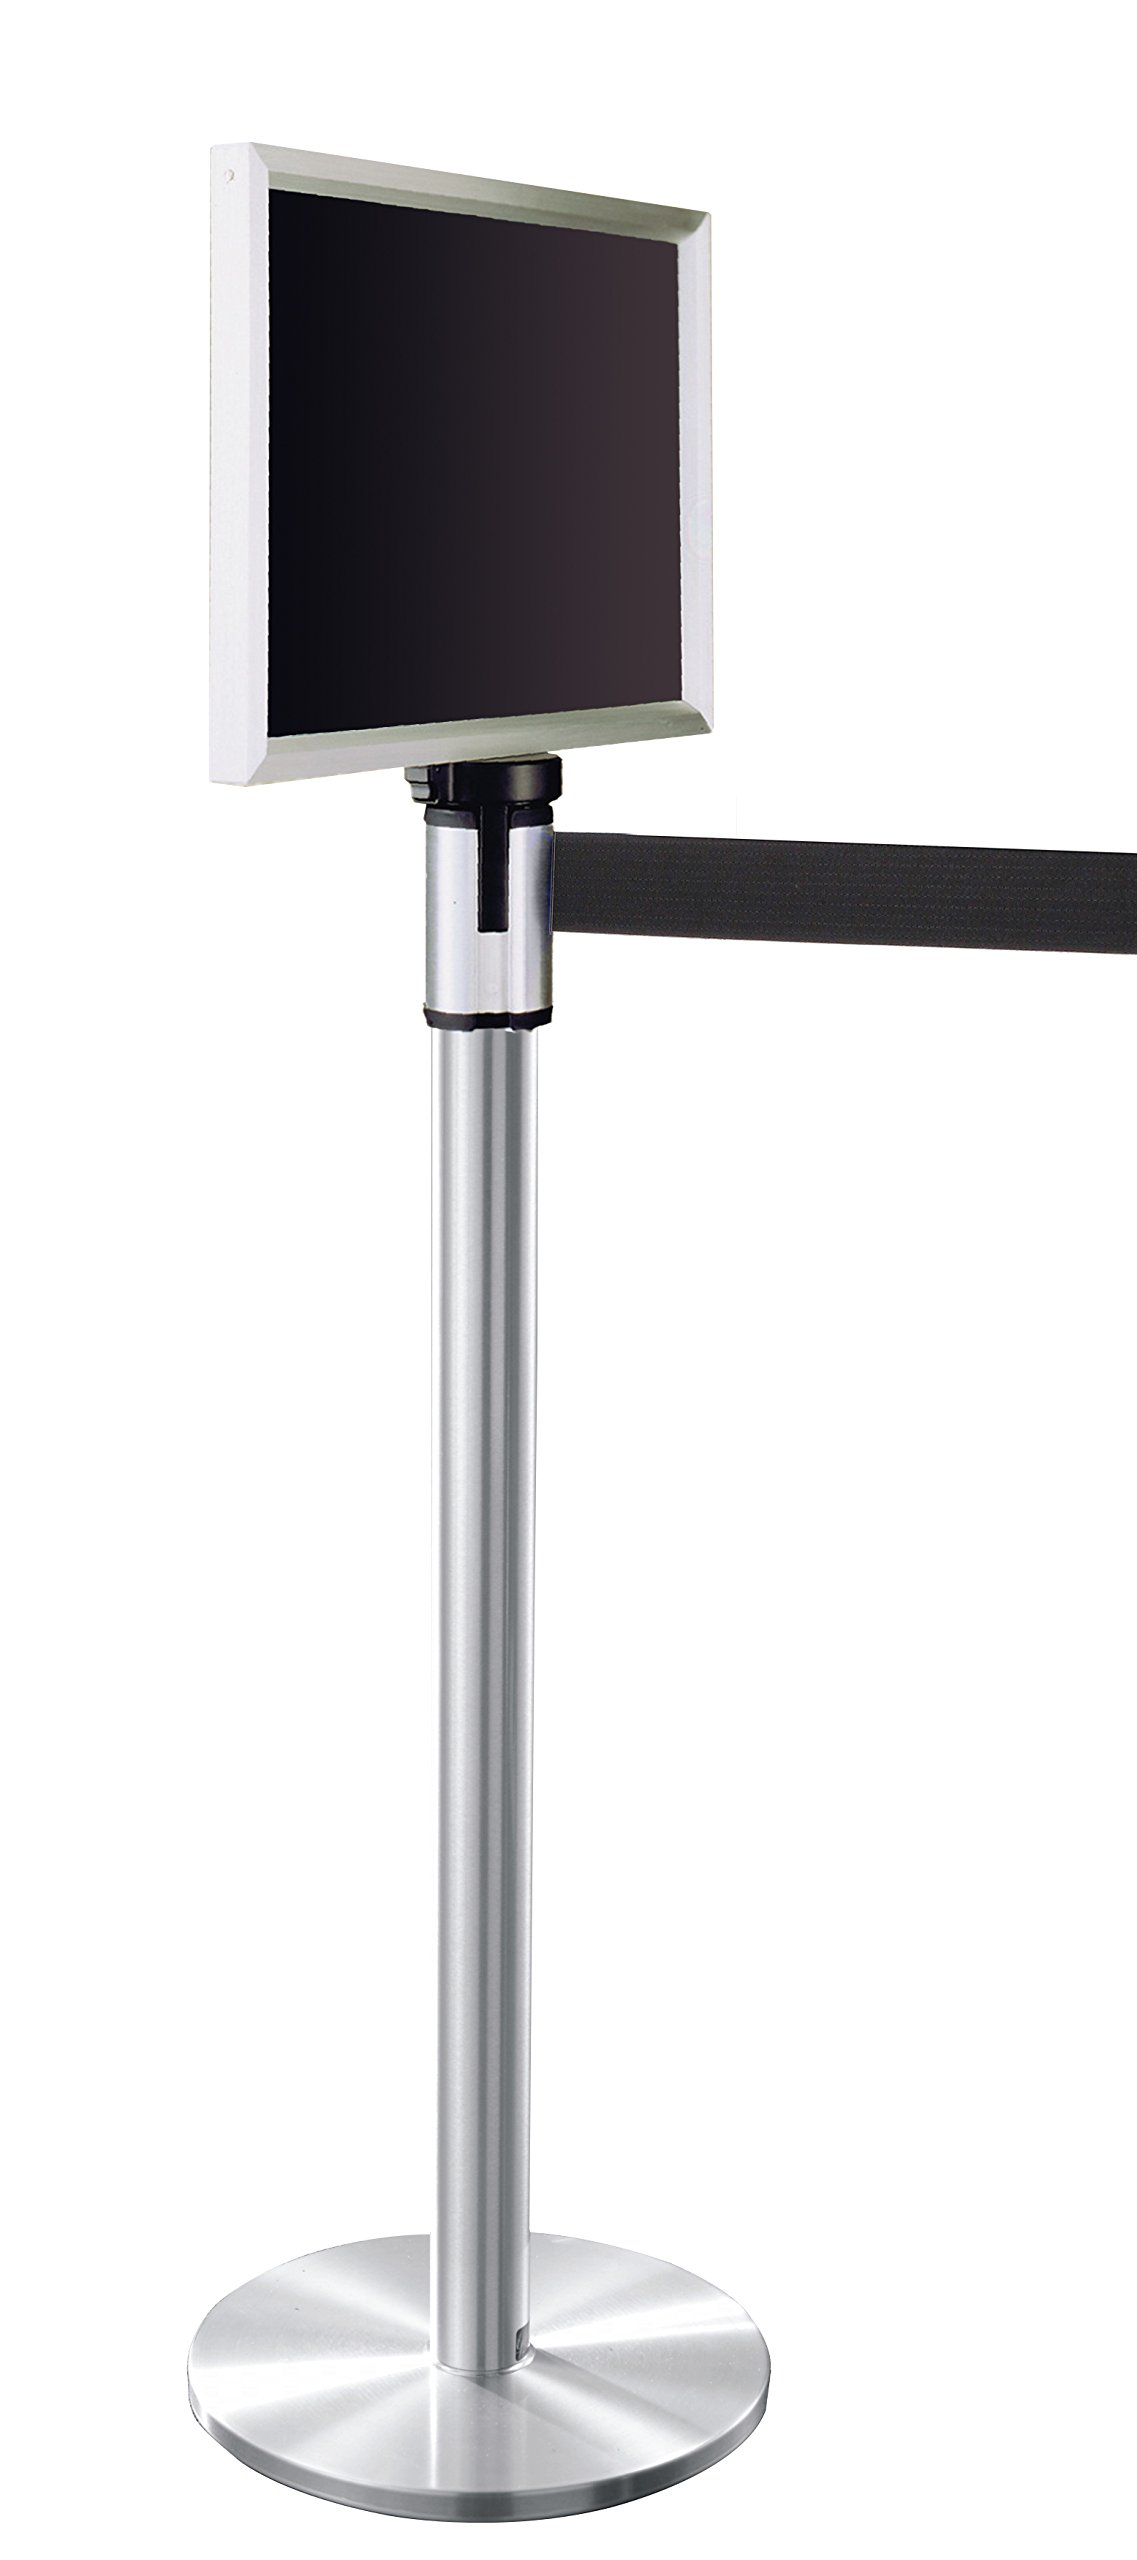 Glaro 152SA-BK-EXL1114SA 13' Retractable Belt Crowd Control Post - Satin Aluminum finish - Black Belt - Satin Aluminum Sign Frame Included